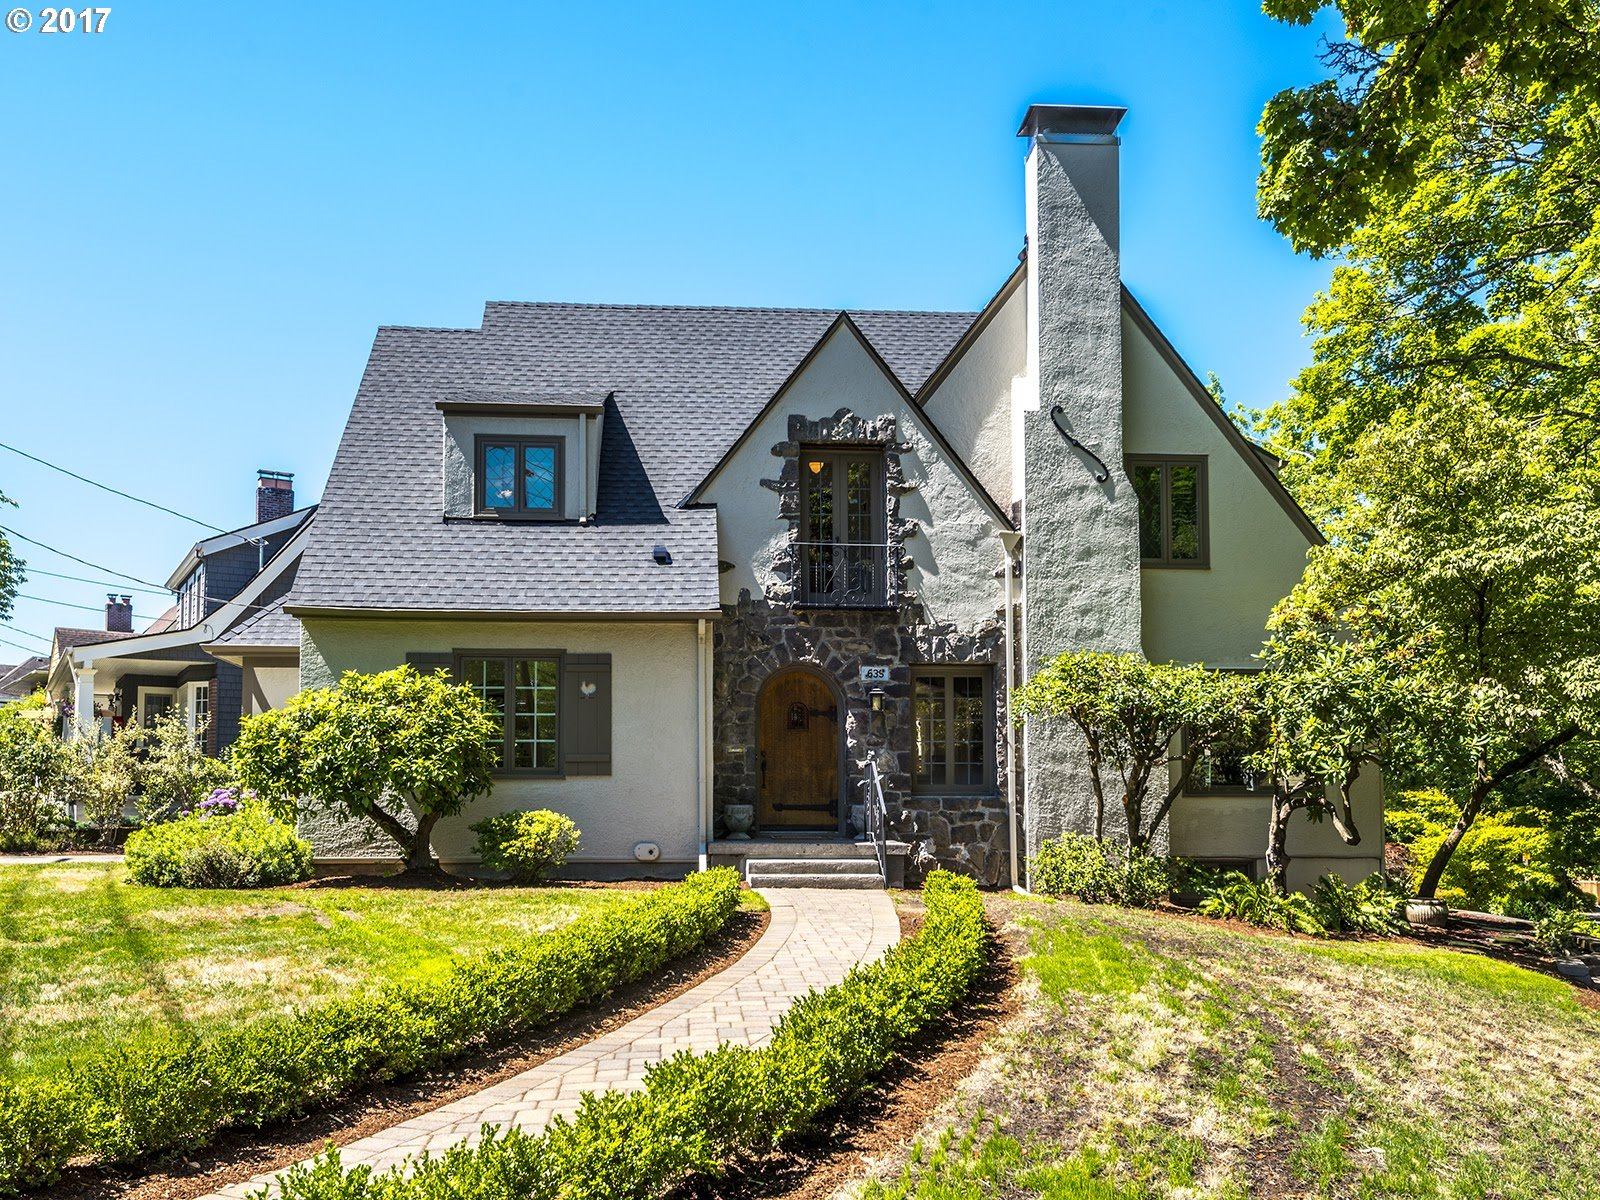 Rich with warm design and historic Laurelhurst charm.Light-filled open floor plan overlooking beautiful tree-lined vistas.Fenced backyard, outdoor fireplace, fountain and 7,000 sf lot.Chef's kitchen, walk in pantry, two laundry rooms, abundant storage.Another artful remodel by McCulloch Construction, built thoughtfully from design up.